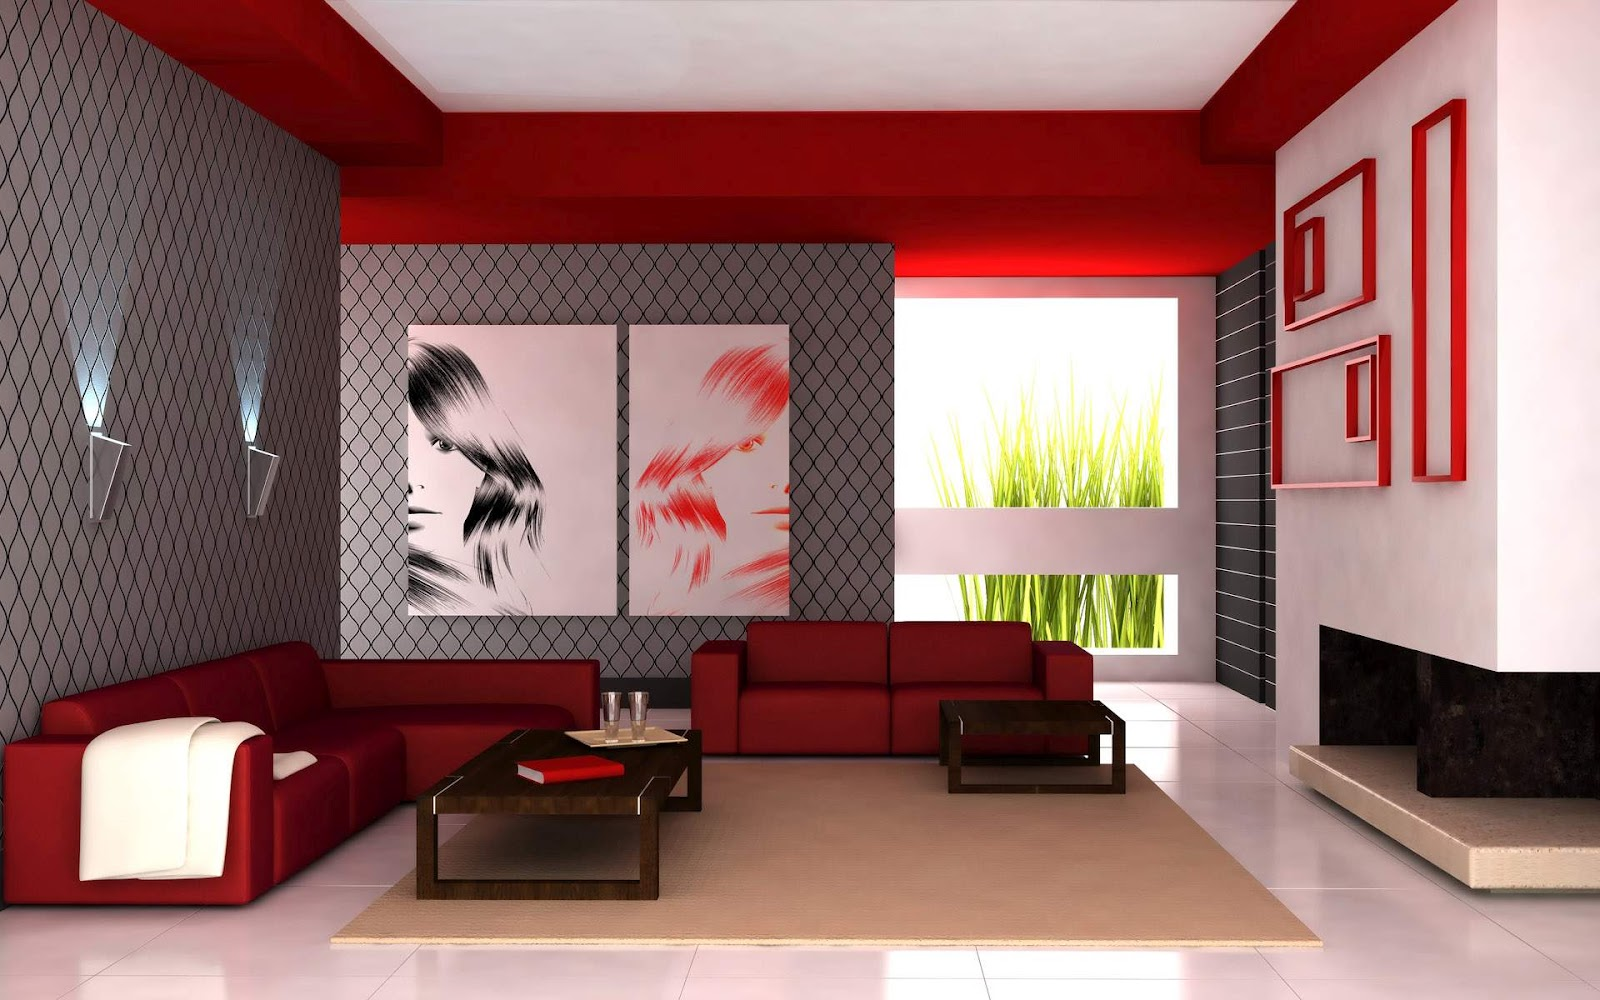 Modern Living Room Design Ideas 2012 modern living room 2012 | interior design-unlimited imagination